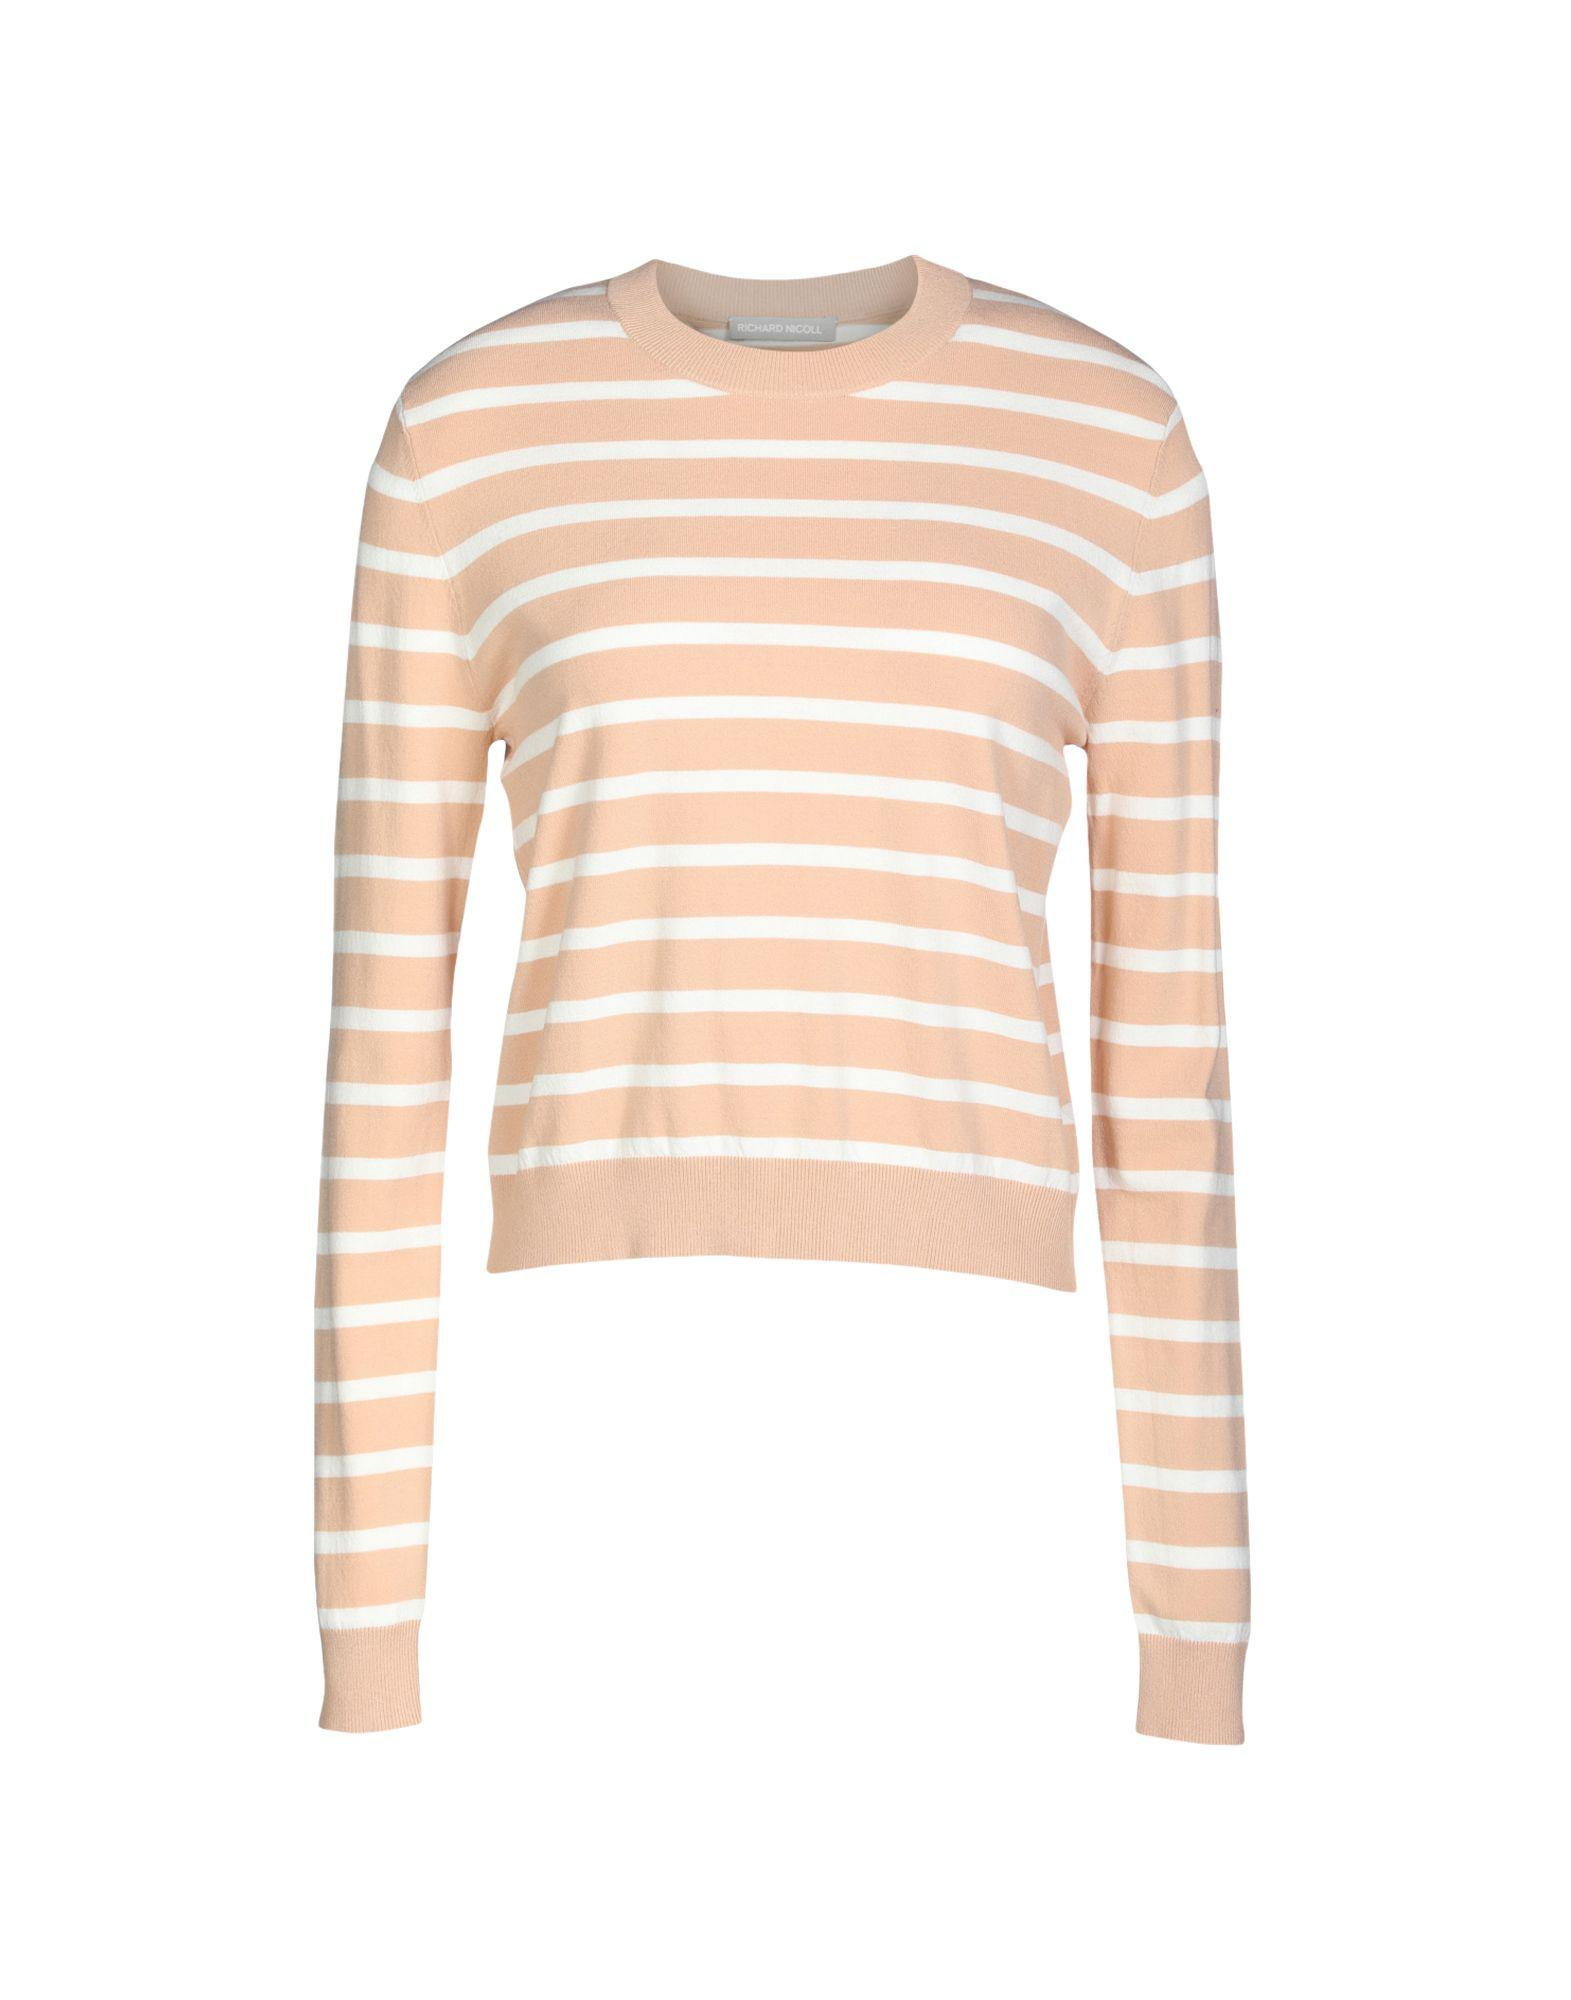 Richard Nicoll Sweater In Sand